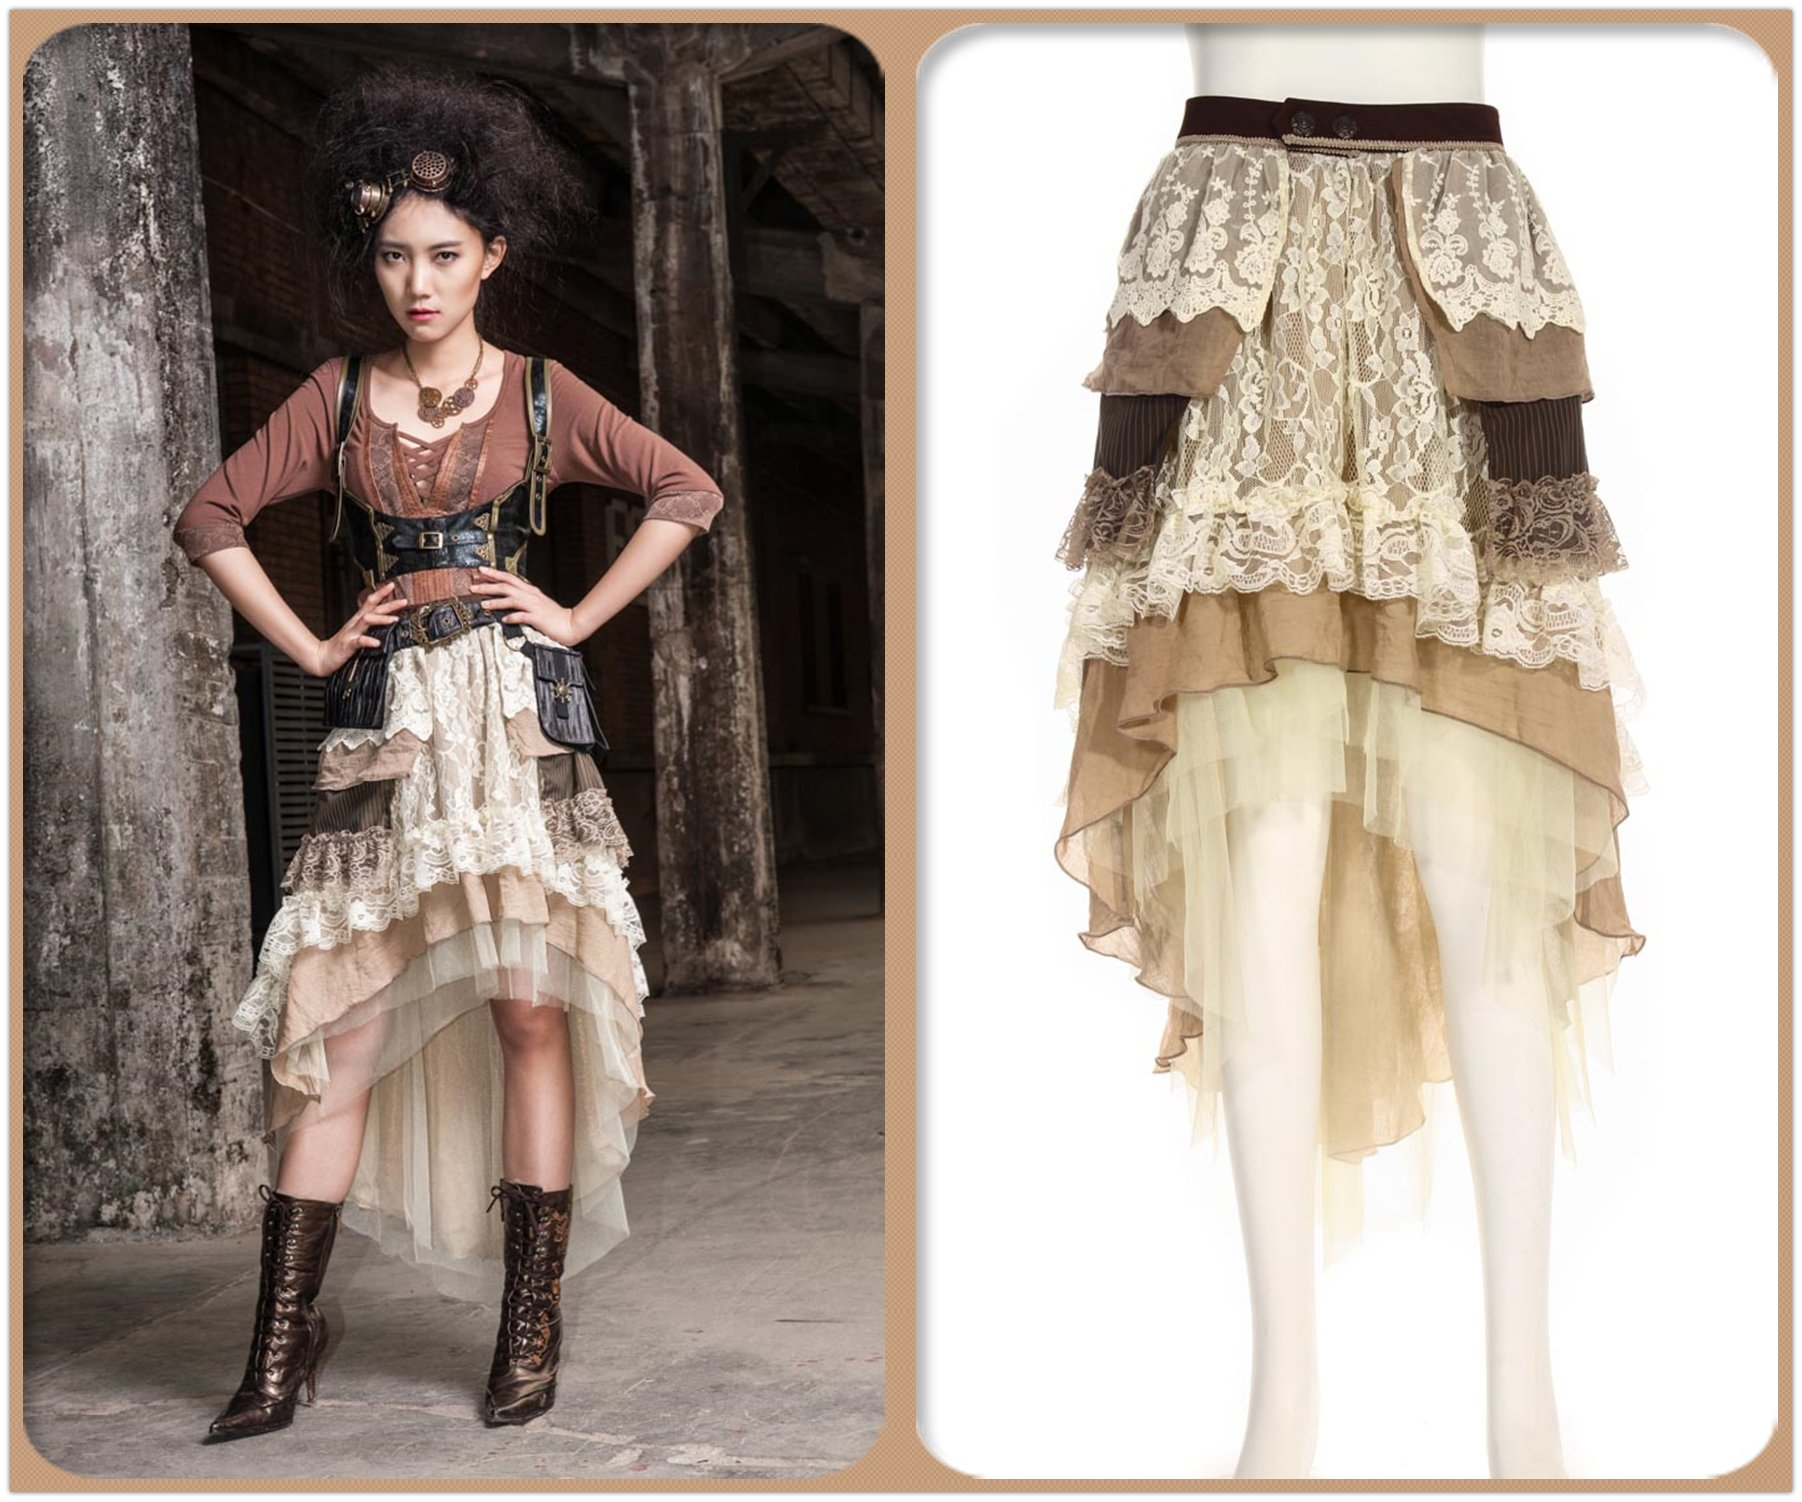 Steampunk Victorian Gothic Sexy Prom Dresses Homecoming Dresses Wedding Dresses Beige 4